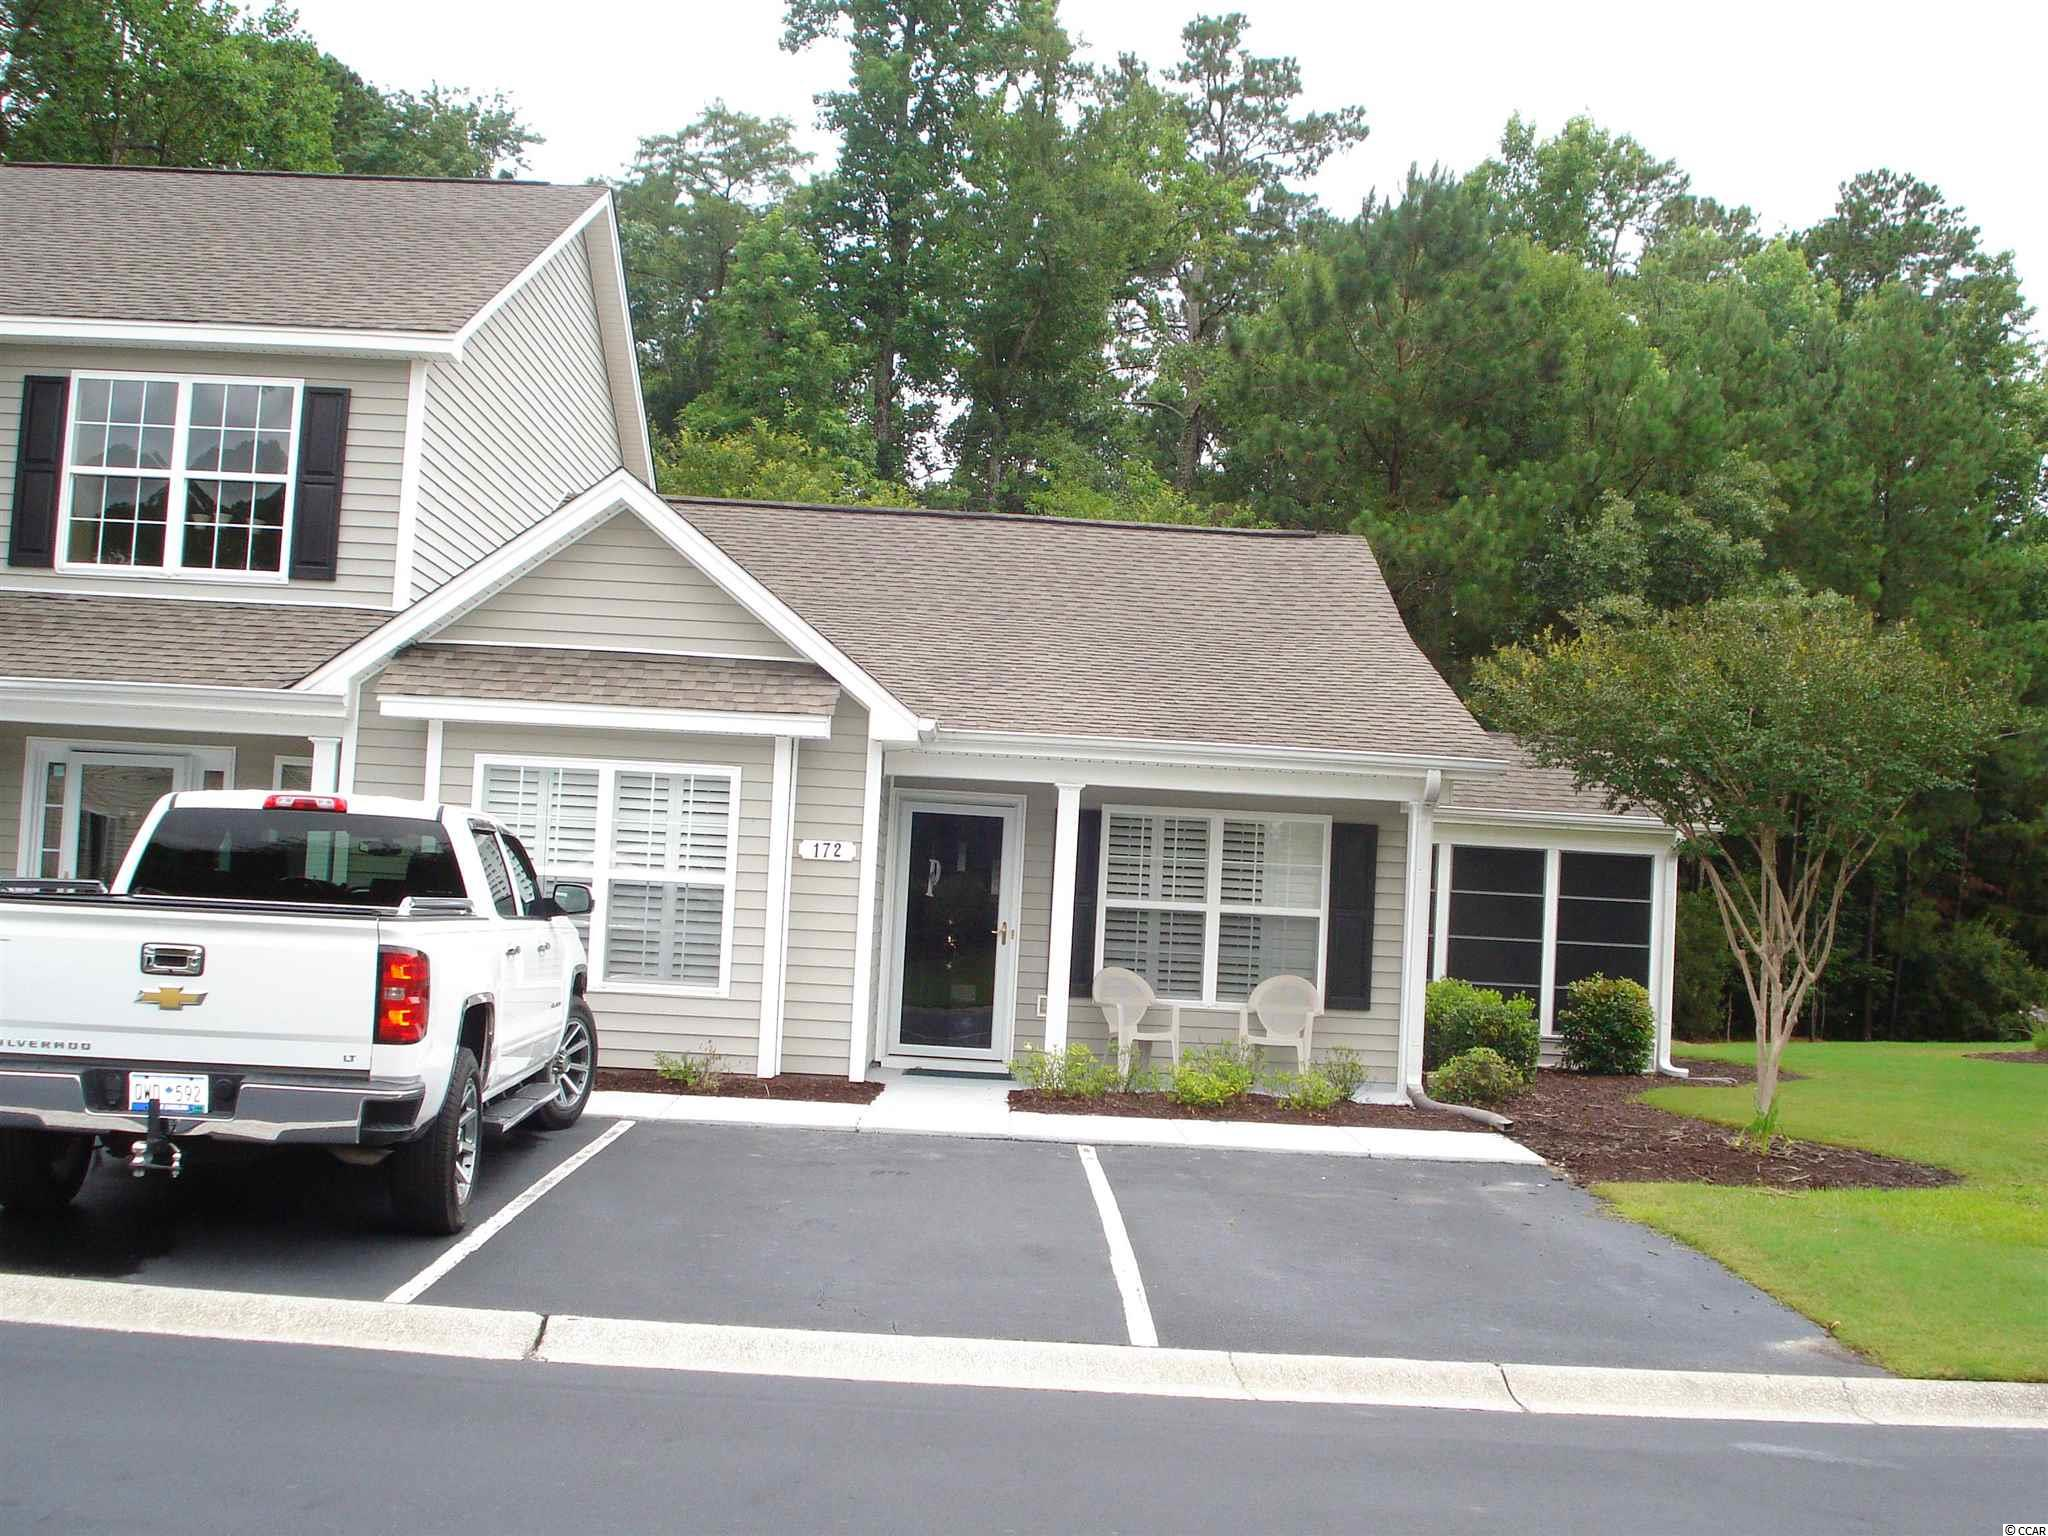 This True Townhome is looking for a new owner and has been well loved and taken care of. Located at The Glen's of the International in Murrells Inlet. This townhome is a one level end unit with plenty of outdoor living. A paved walk way to your front porch, an easy breeze porch off of your dining room, a rear screened porch and patio off of the kitchen to enjoy the large private backyard. Two generous sized bedrooms, with the master having a private bath with large walk in shower.  A lovely open floor plan with vaulted ceiling in the living area, laundry room, dining area, attached storage area, plantation shutters throughout home, wood flooring, a bright kitchen with 42 inch cabinets, pantry, and all appliances. Your Realtor can provide you with the extensive upgrade list for this awesome townhome. The International Club offers top notch ammenities to include a beautiful outdoor pool, ammenity center, playground, and much more. Murrells Inlet is known for the most delicious fresh seafood, dining, golf, our beautiful beaches, state park, Brookgreen Gardens, and great weather. Make an appointment today to see your new home. All information is deemed reliable, buyer is responsible for verification.